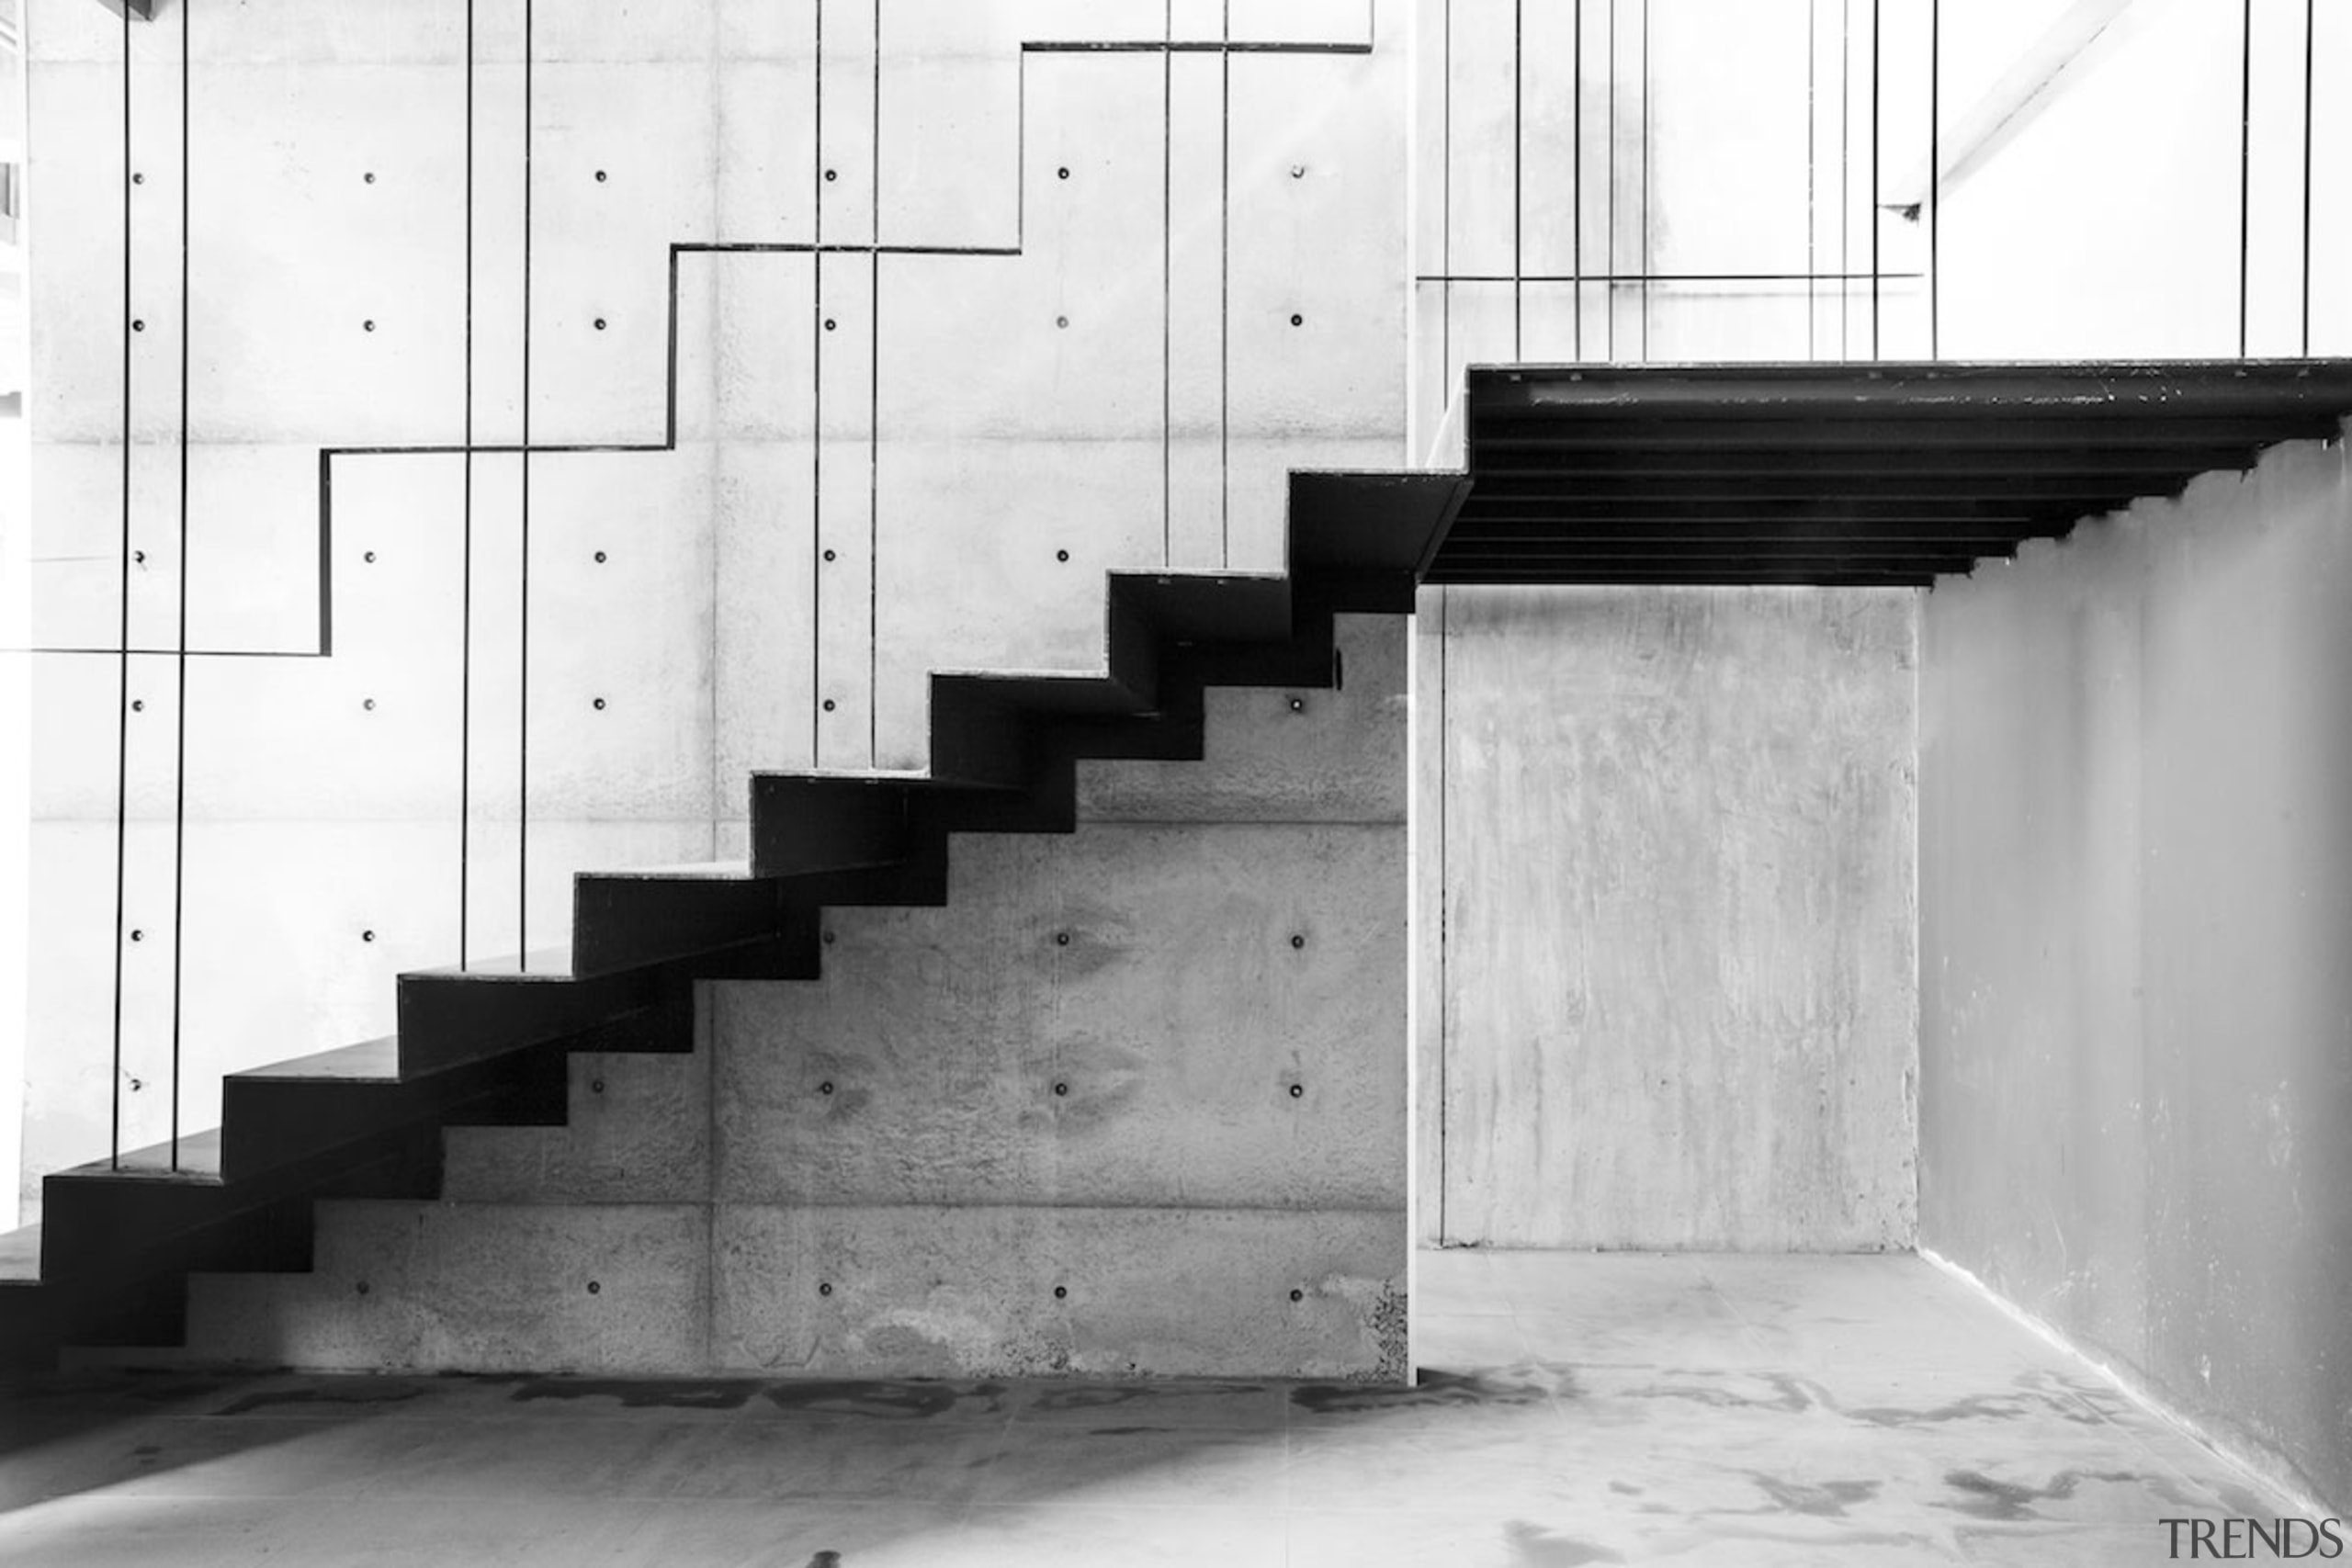 Naiipa 22 - architecture | black and white architecture, black and white, monochrome, monochrome photography, photography, stairs, structure, wall, white